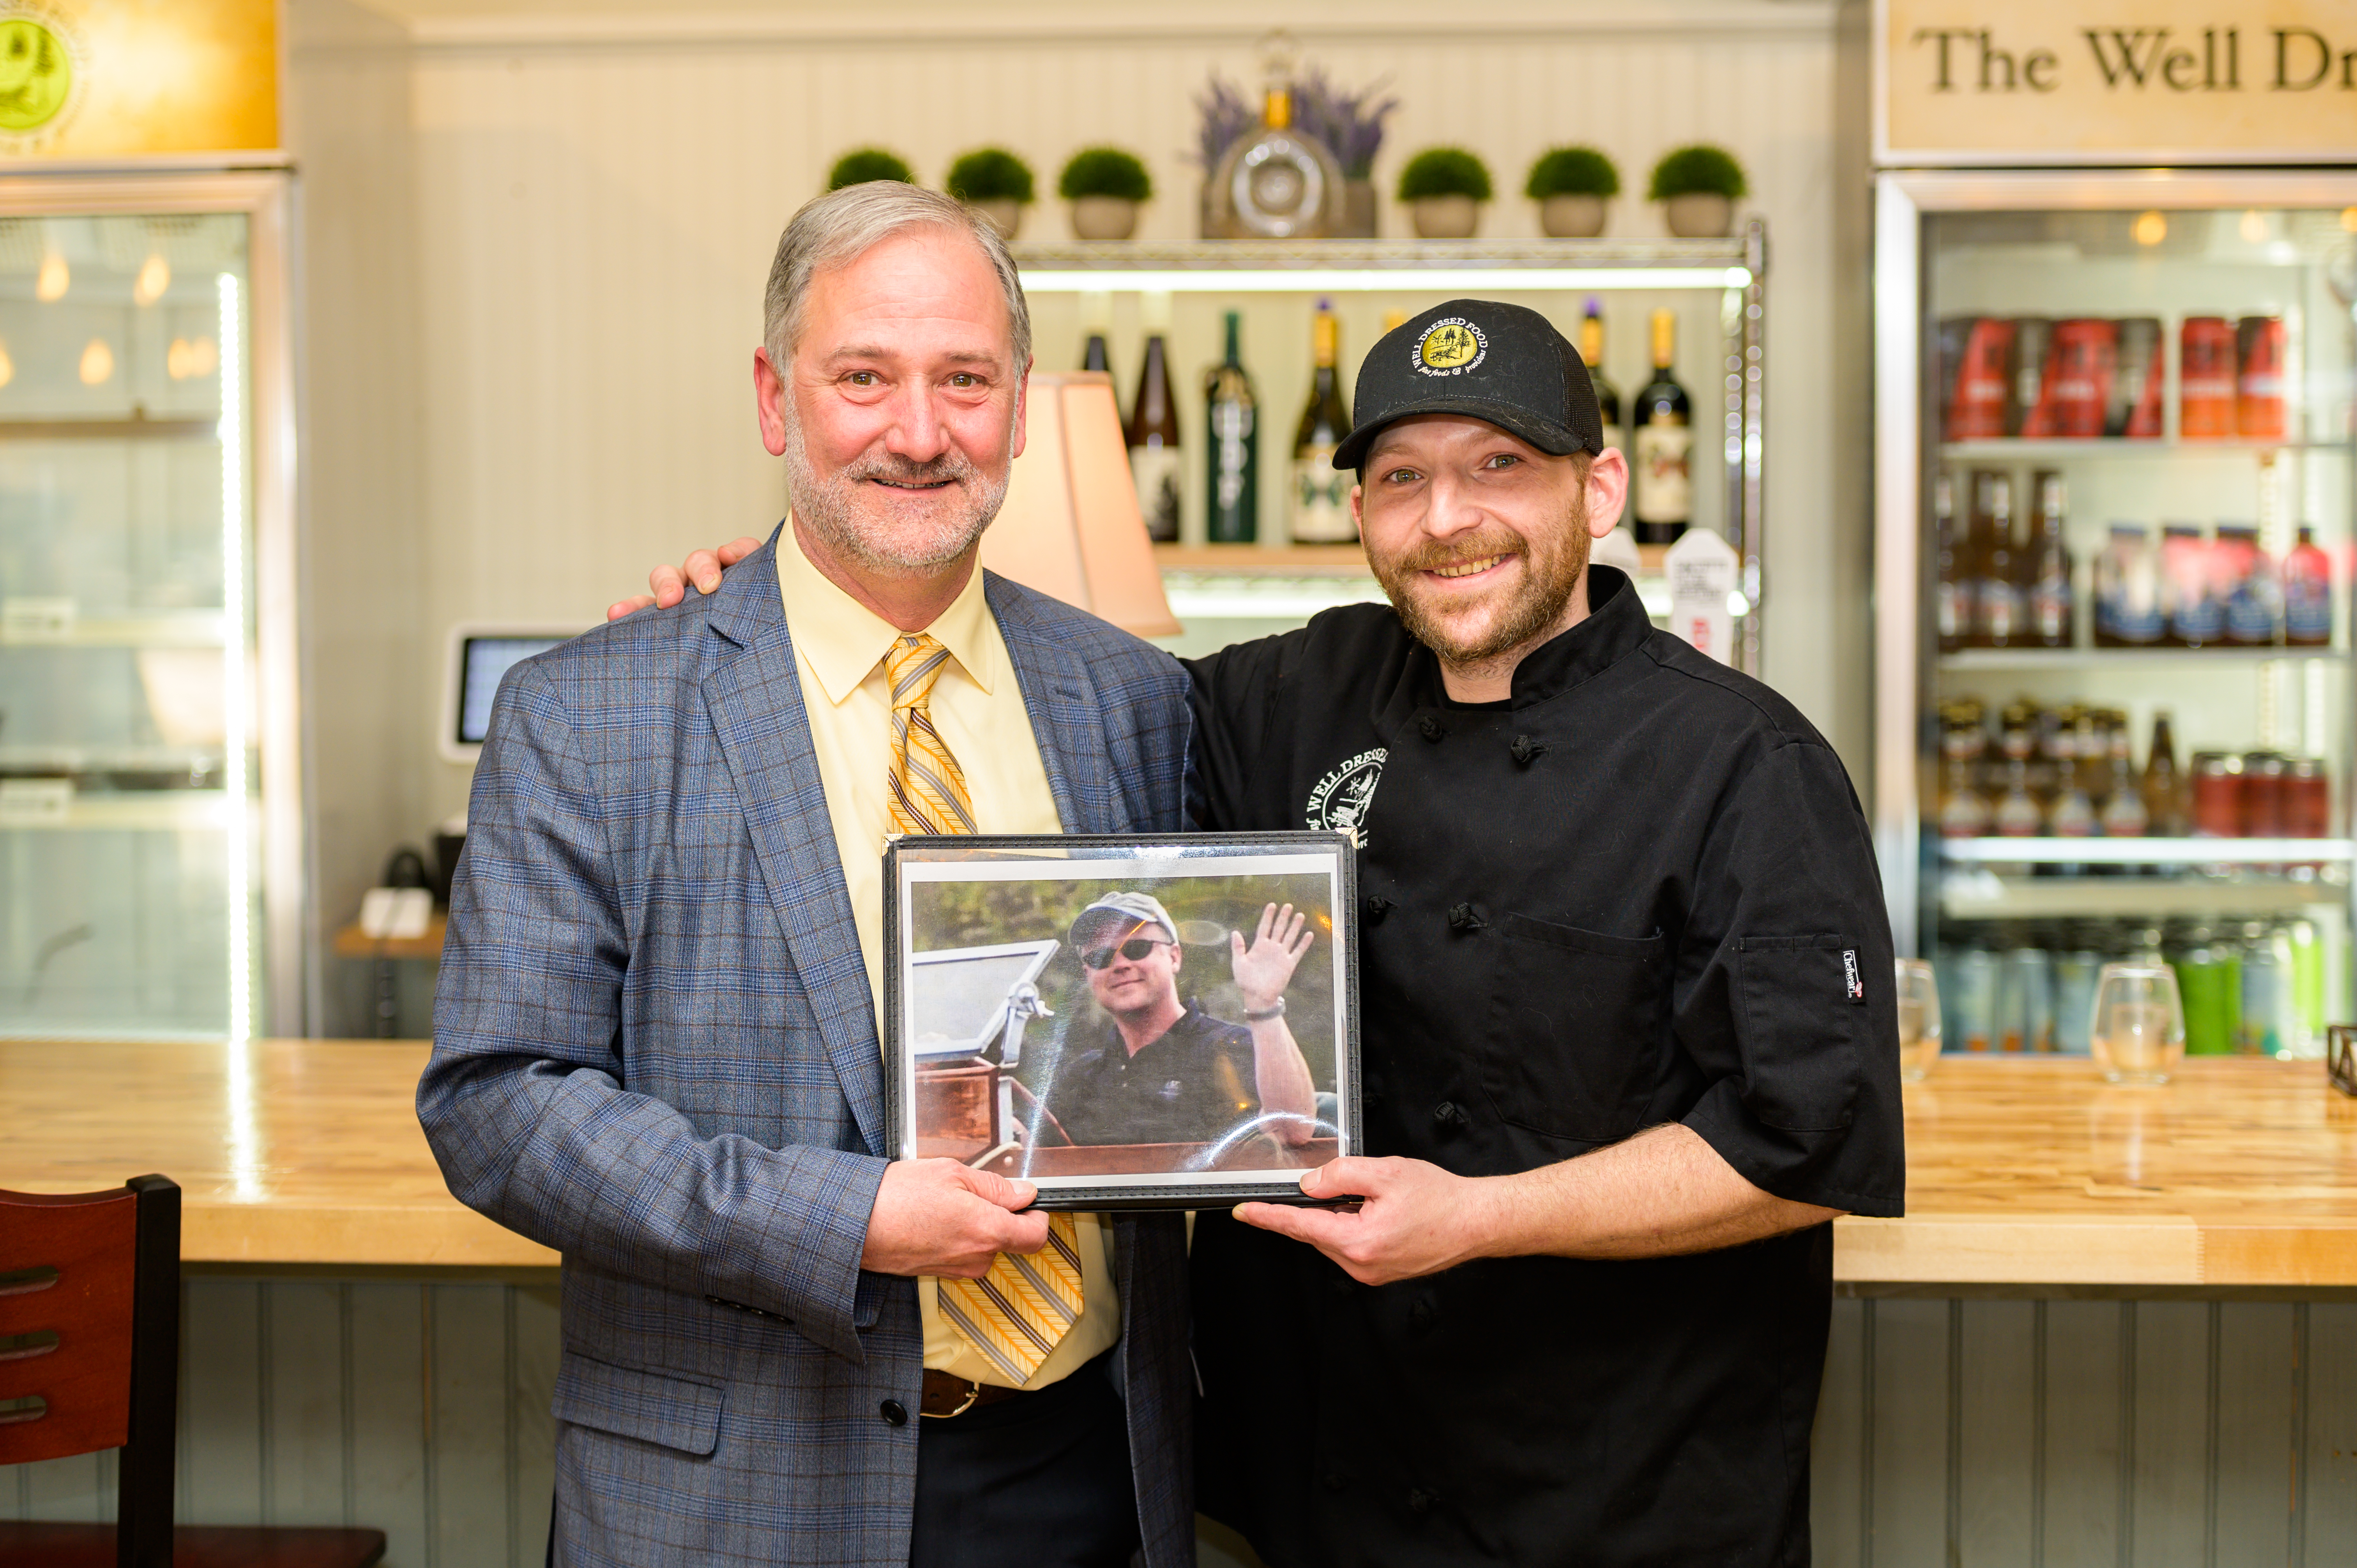 Owner Russell Cronin (left) and manager Mitch LaLonde (right) smile while holding a framed photo of David Tomberlin